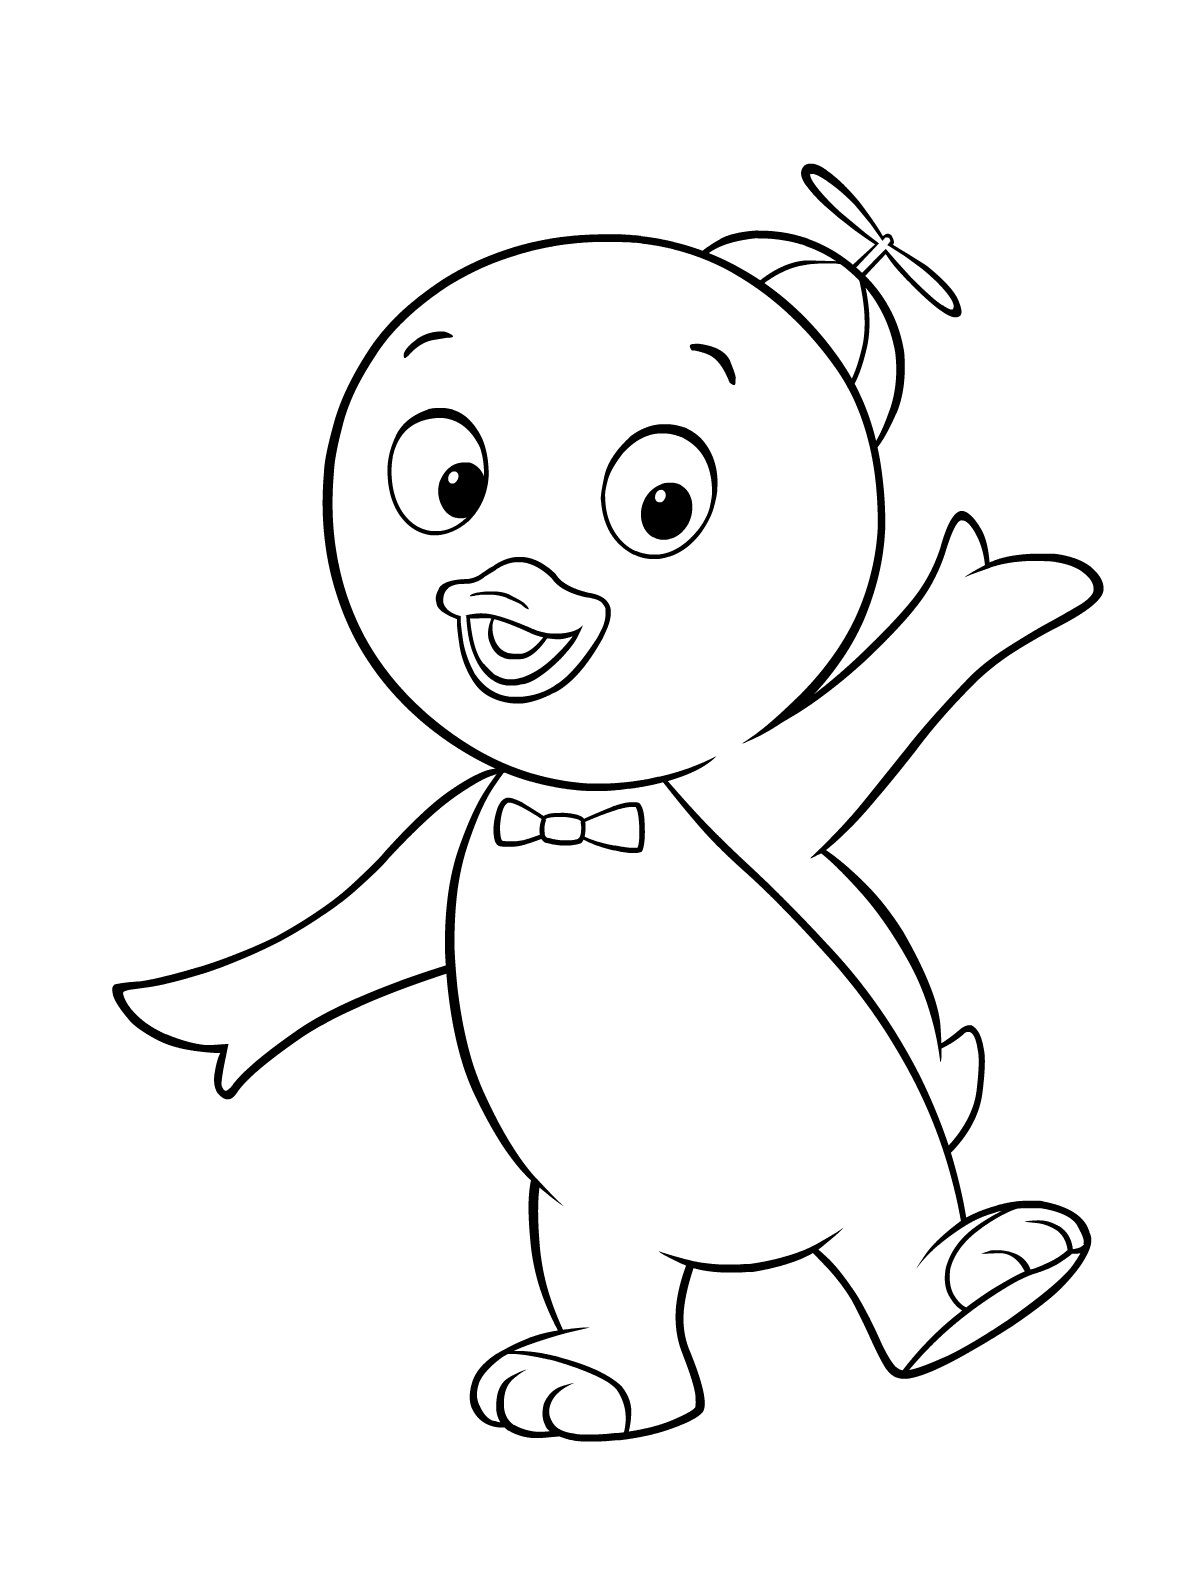 Backyardigans Coloring Pages Coloring Kids Coloring Pages